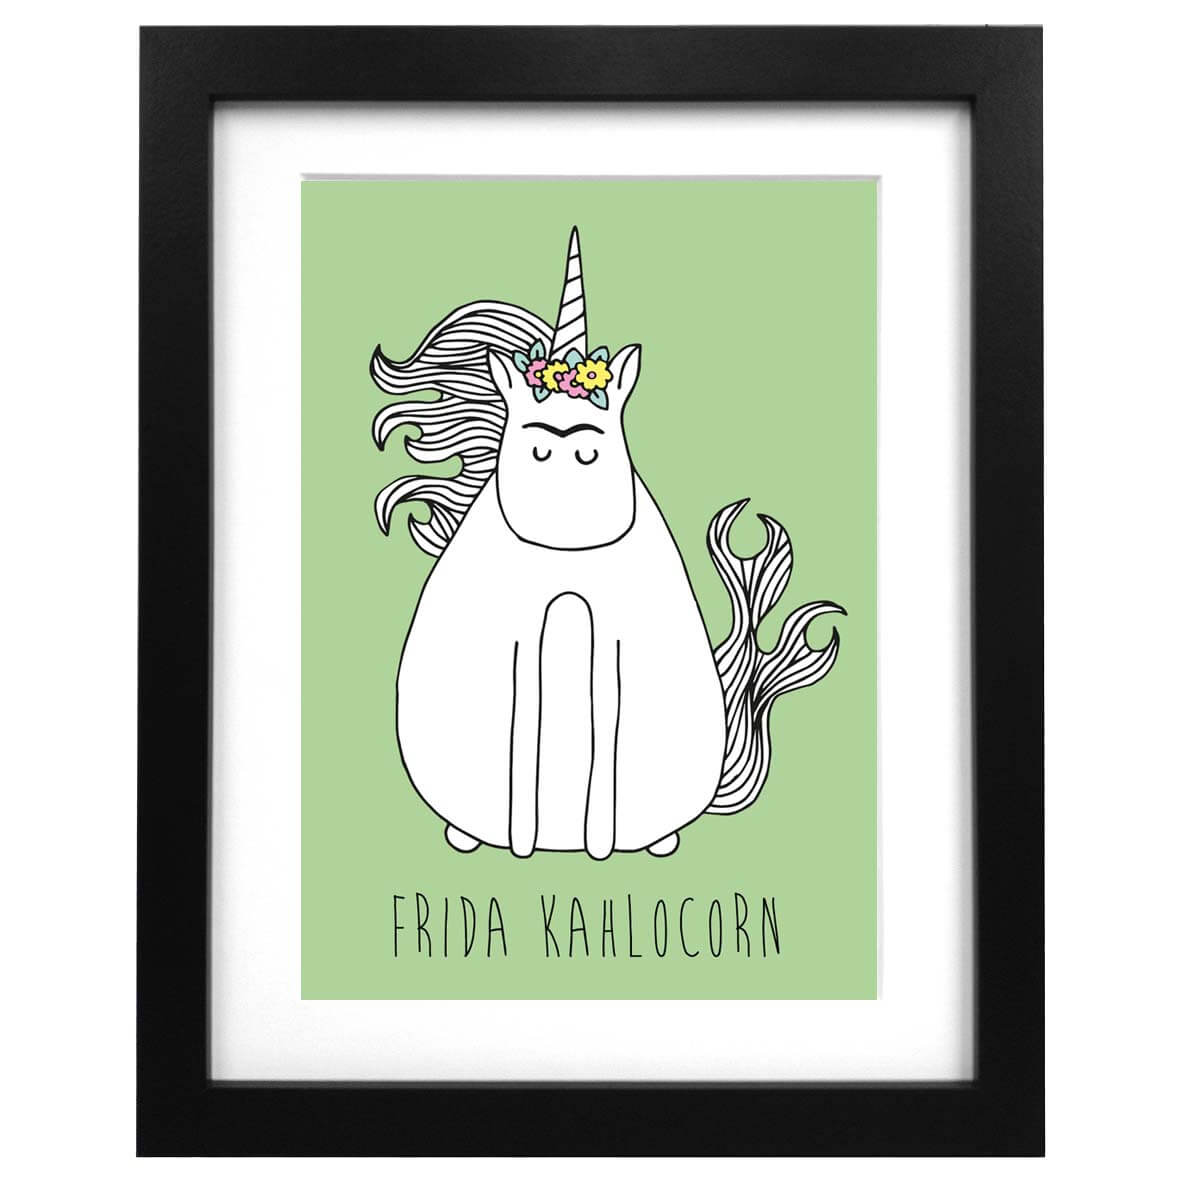 Green A3 art print with an illustration of Frida Kahlo unicorn